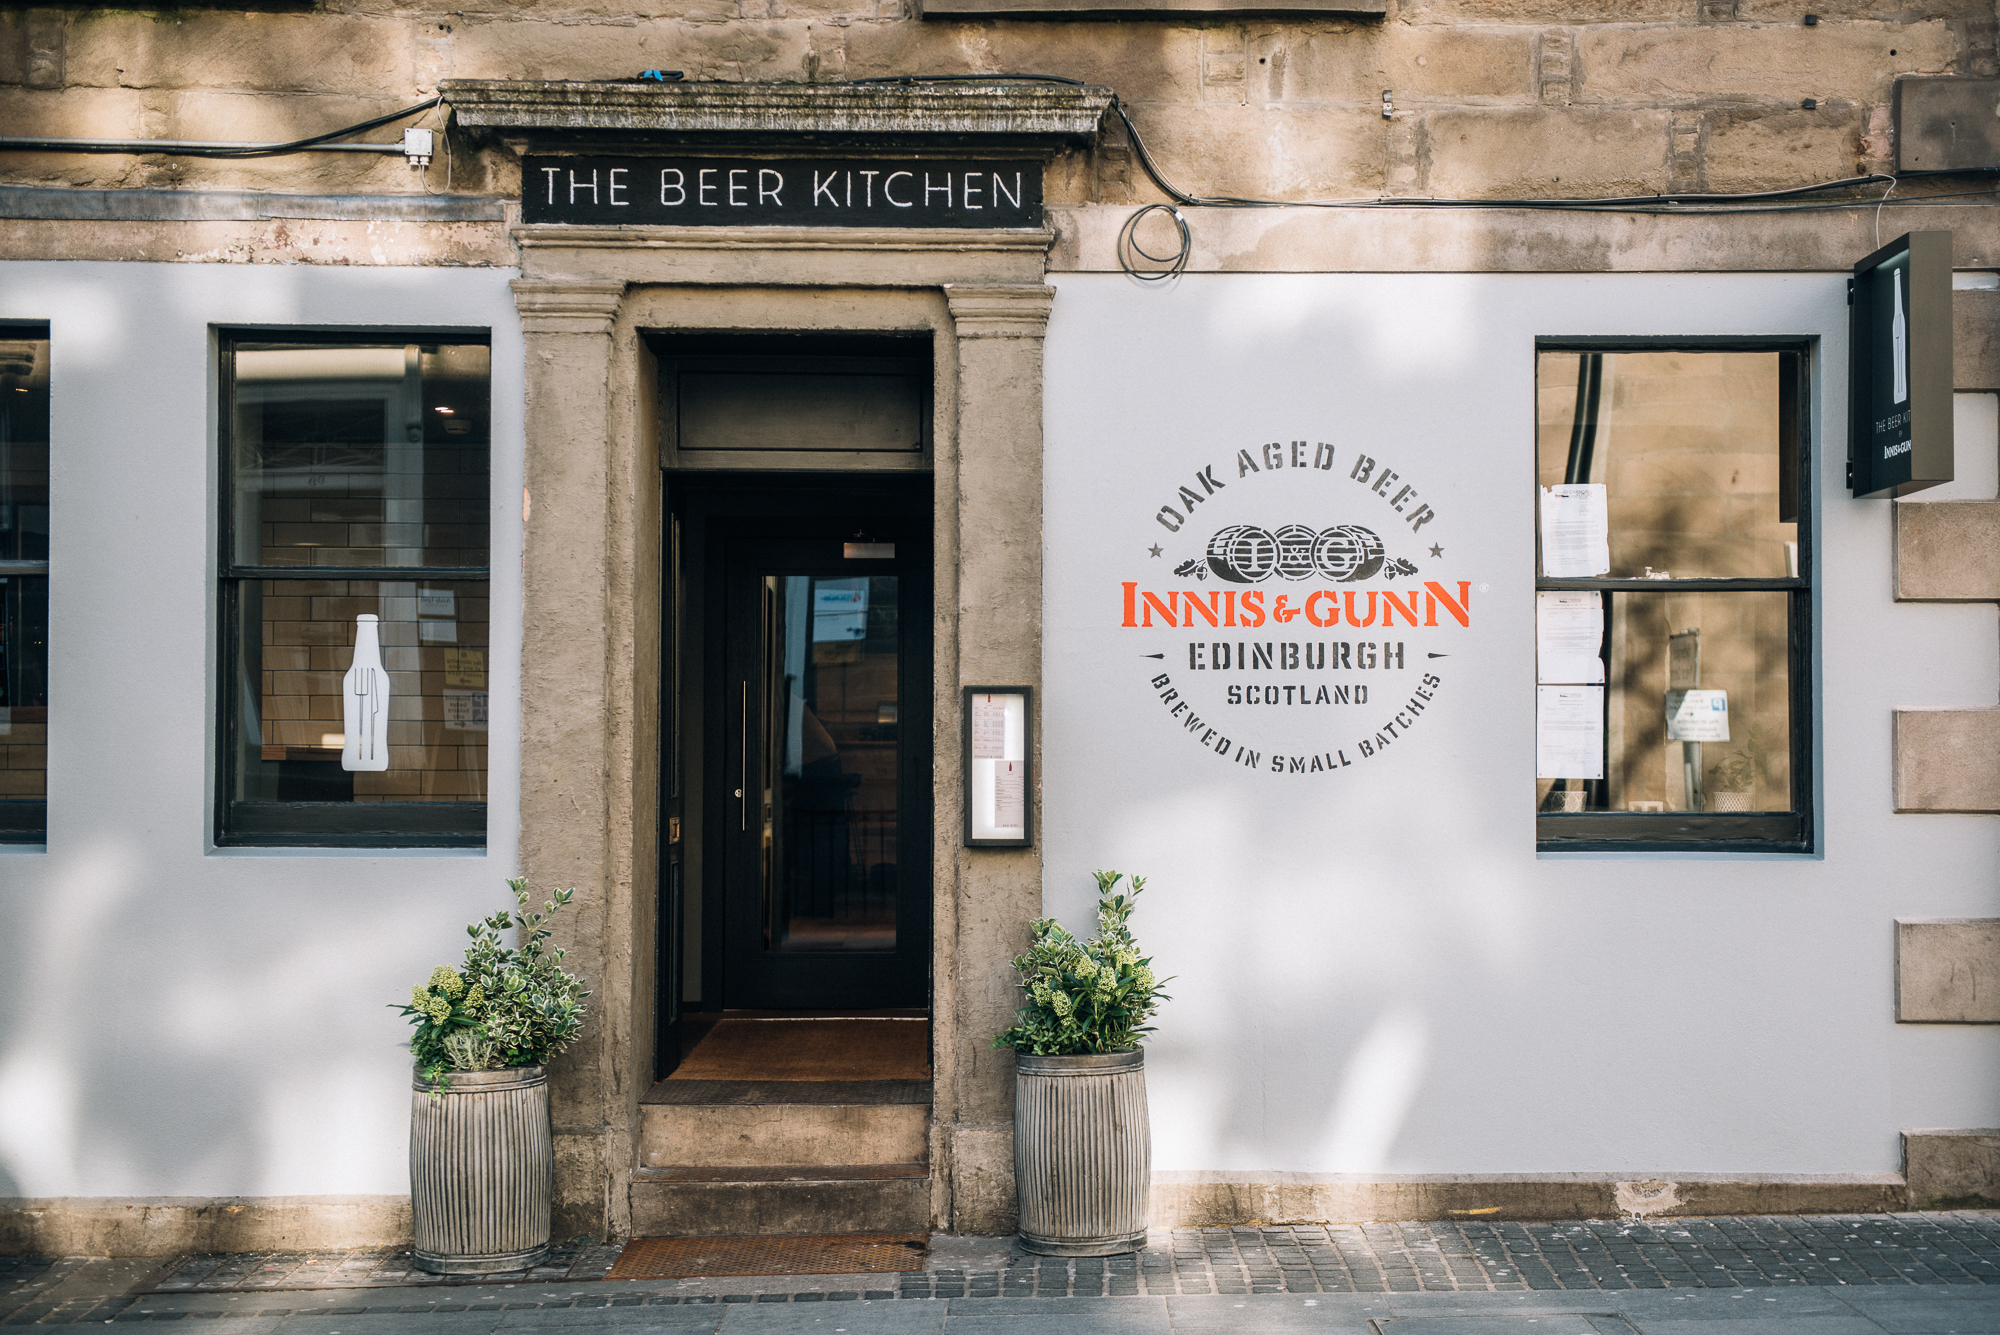 Beer & Marmalade unite: Innis & Gunn opens The Beer Kitchen in ...